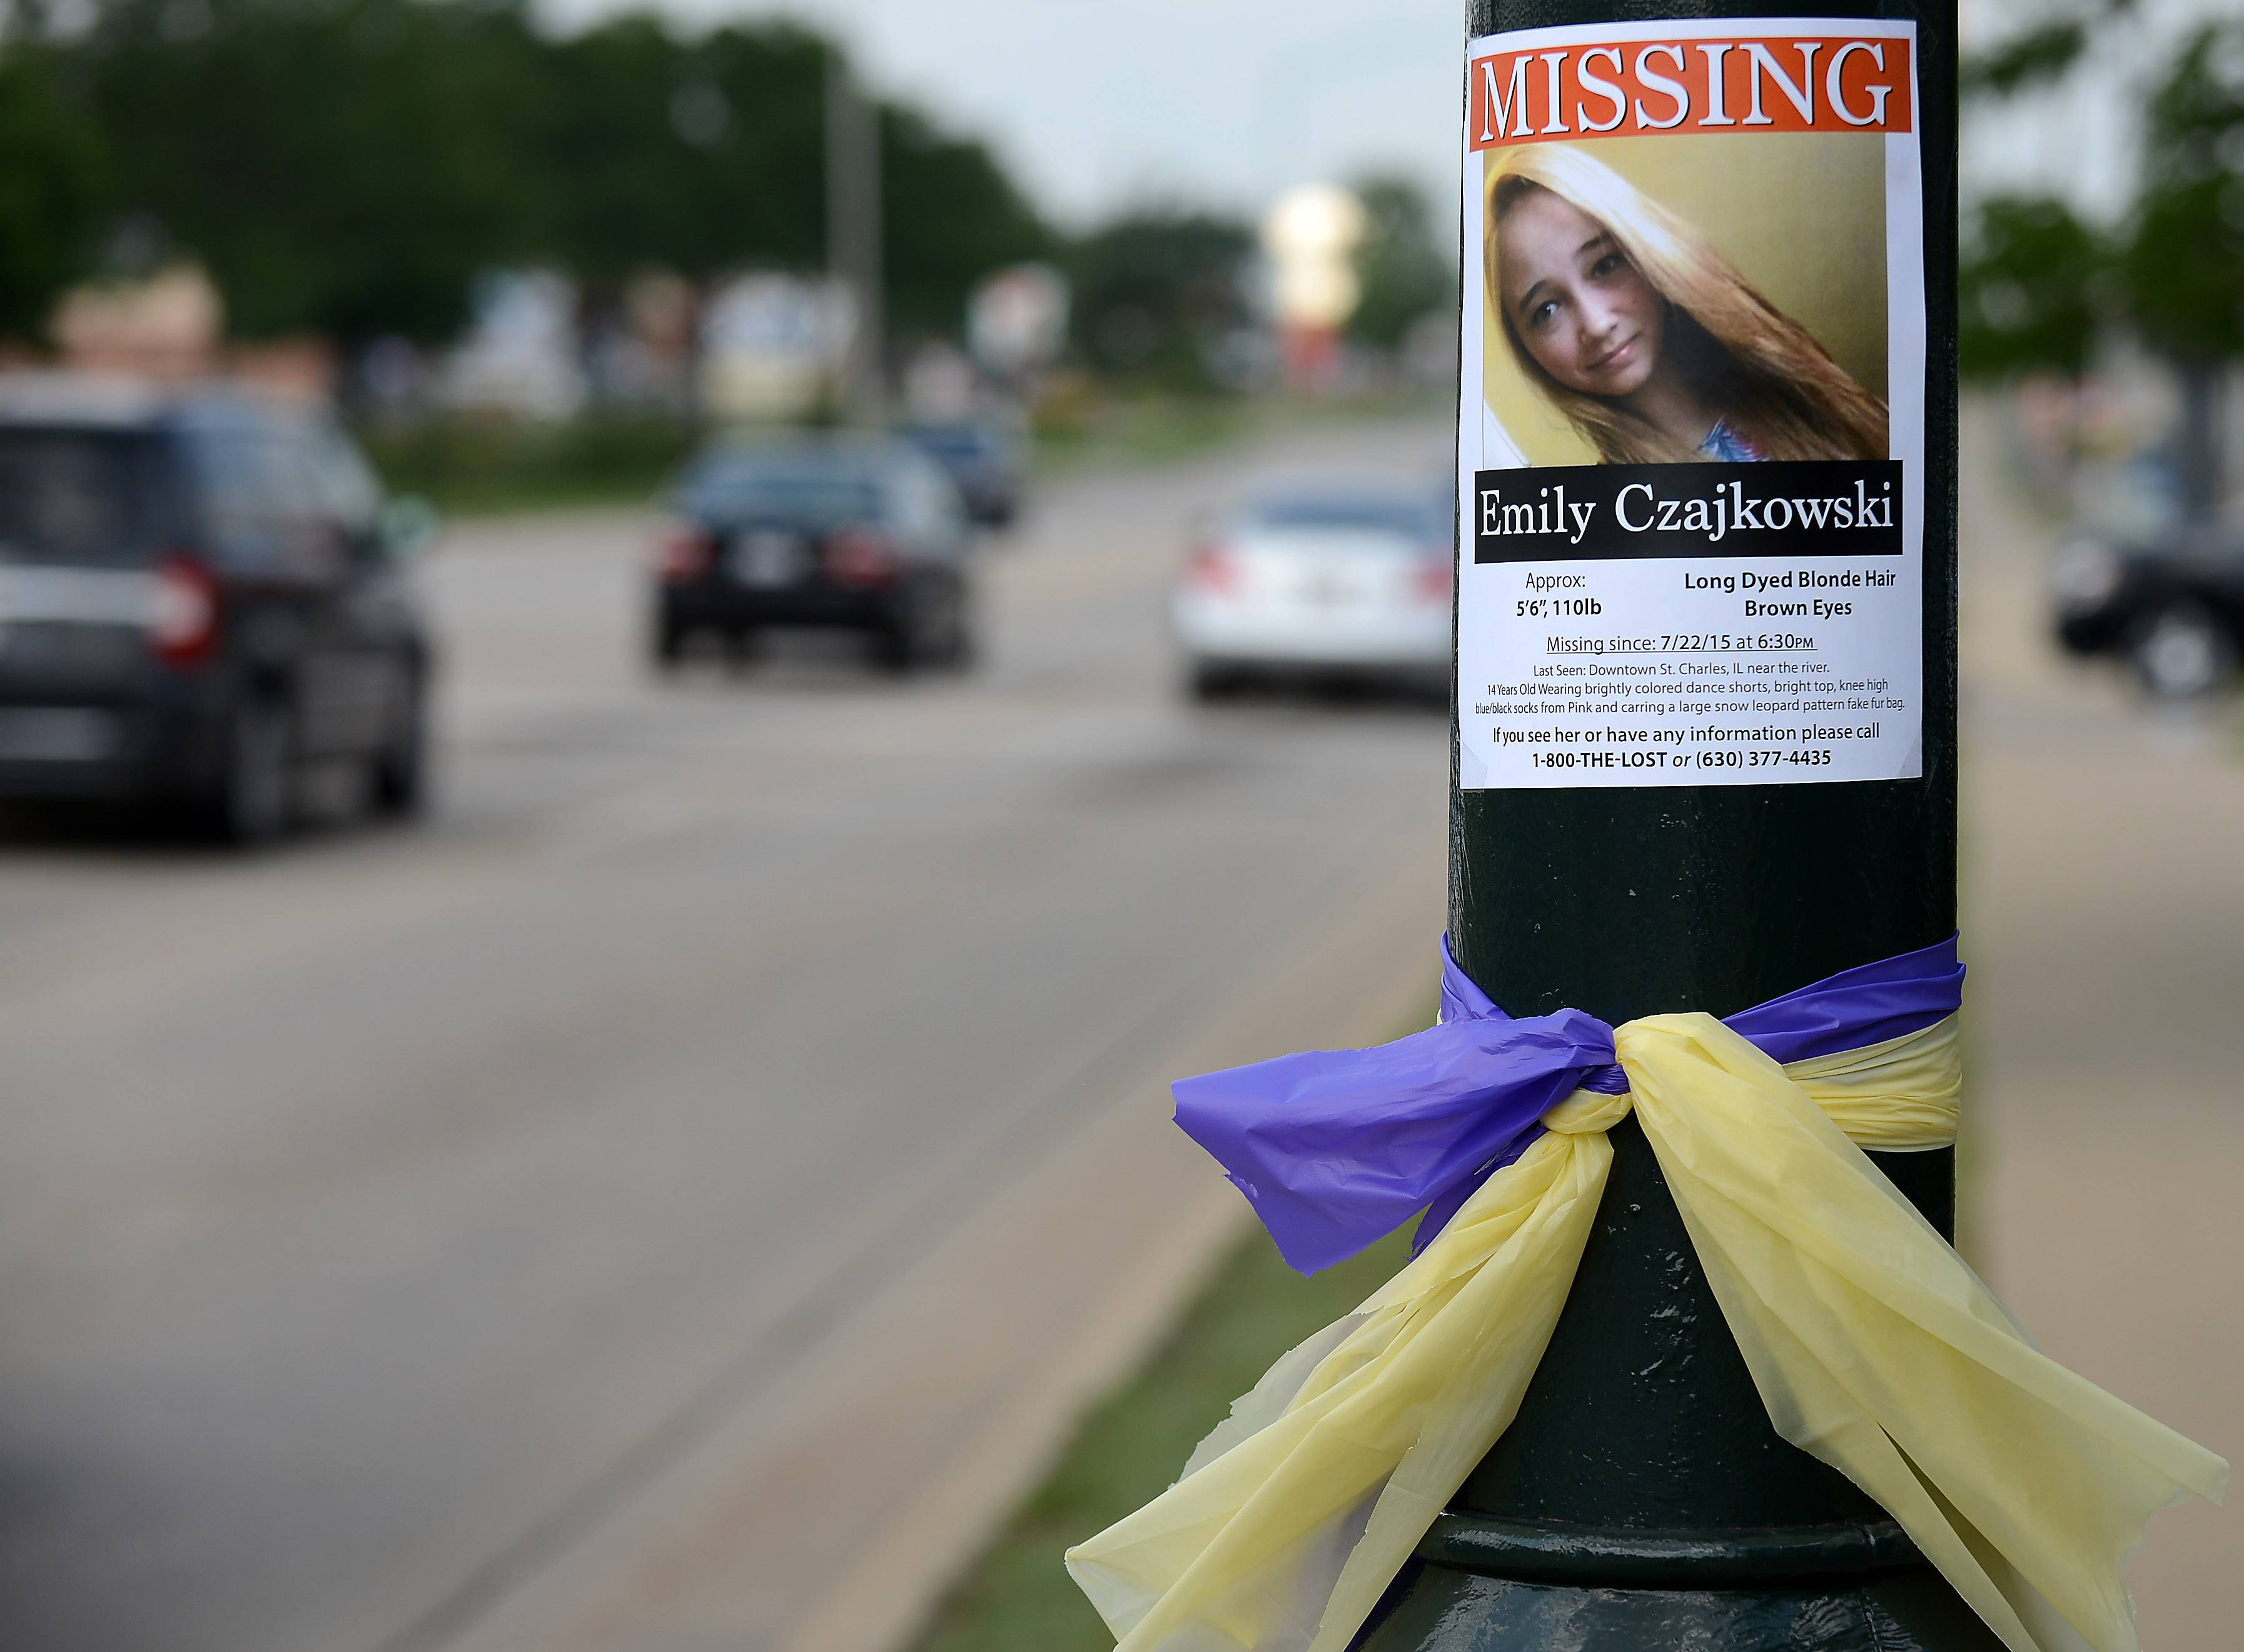 Posters about missing teen Emily Czajkowski, 14, of Campton Hills dot many lampposts, trees and utility poles Monday morning in St. Charles. She went missing Wednesday after being dropped off for a dance class in St. Charles. Ribbons in what are said to be her favorite colors are common along Route 64.